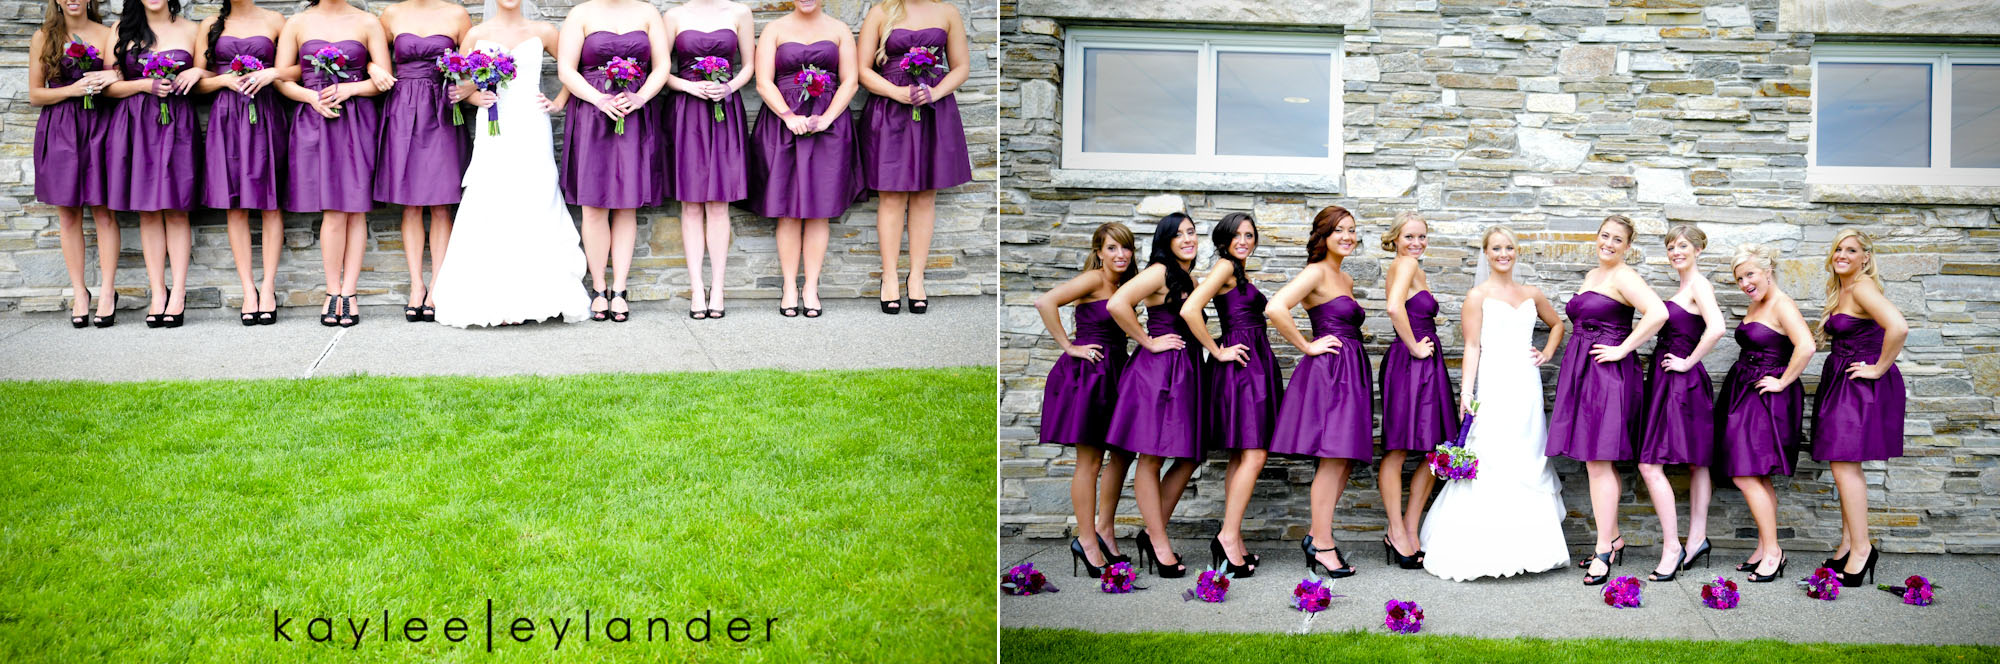 03081 Snoqualmie Ridge Golf Club Wedding | Modern Fun Wedding Photographer